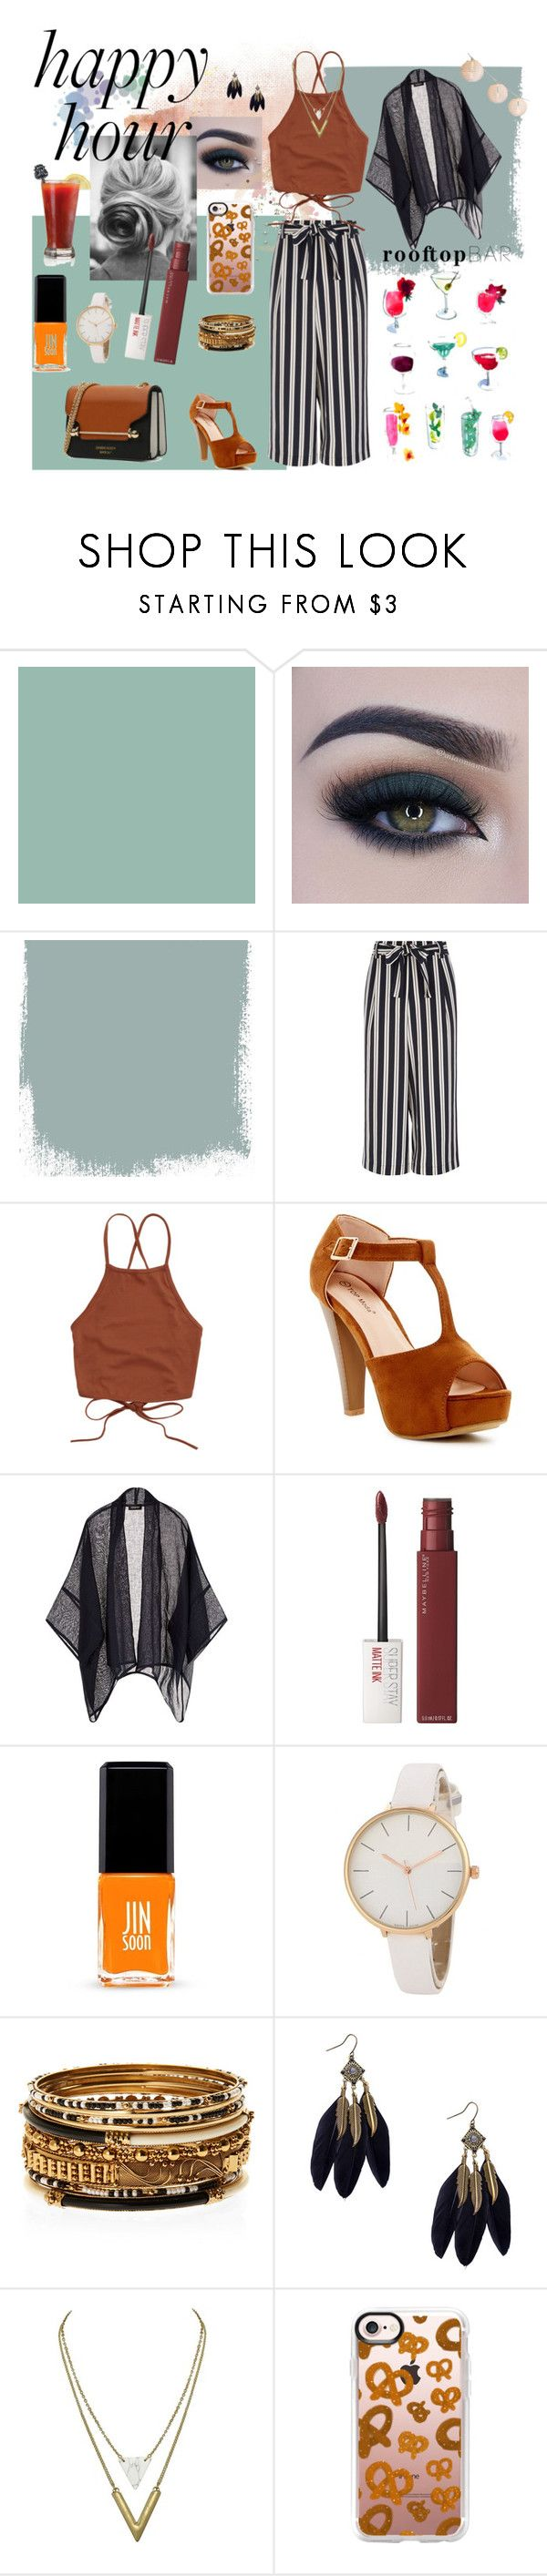 """Happy hour contest"" by lizenn-annah-binet ❤ liked on Polyvore featuring Too Faced Cosmetics, Top Moda, Eskandar, Maybelline, Jin Soon, Amrita Singh, Casetify and happyhour"